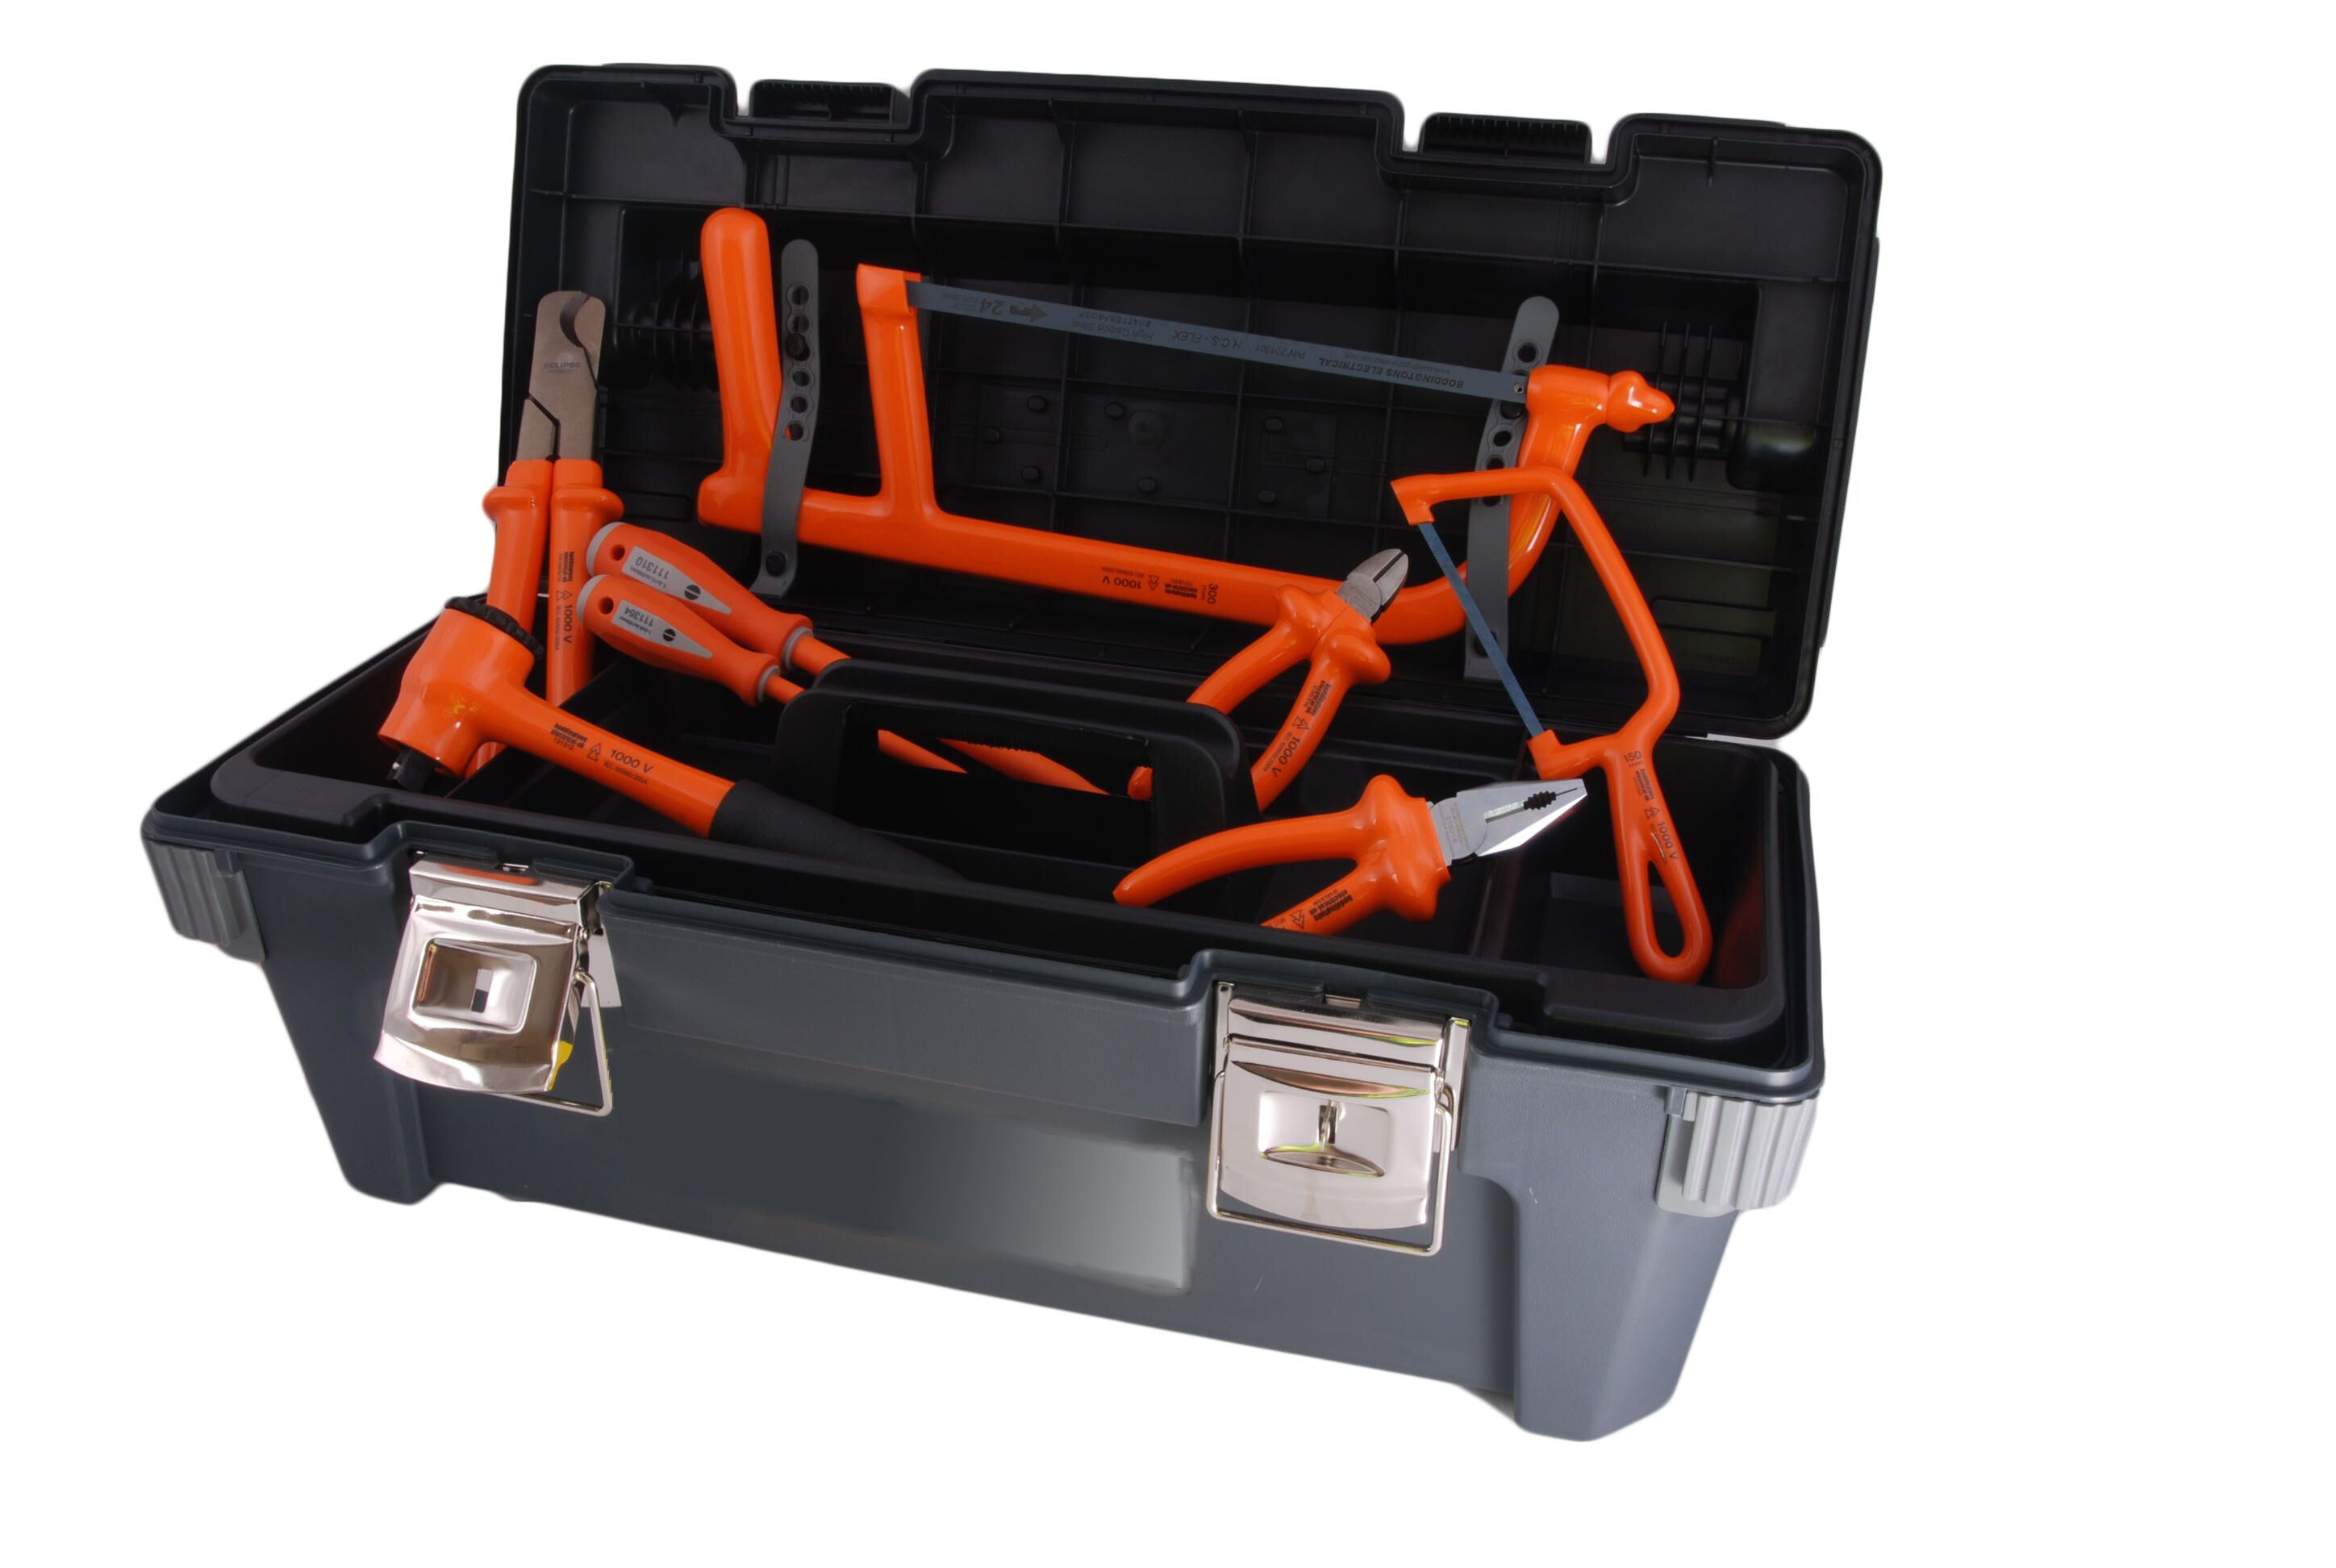 Boddingtons Electrical 240K01 35 Piece Jointer's Tool Kit 1 - Insulated Tools For Live Line Working & Electrical Safety